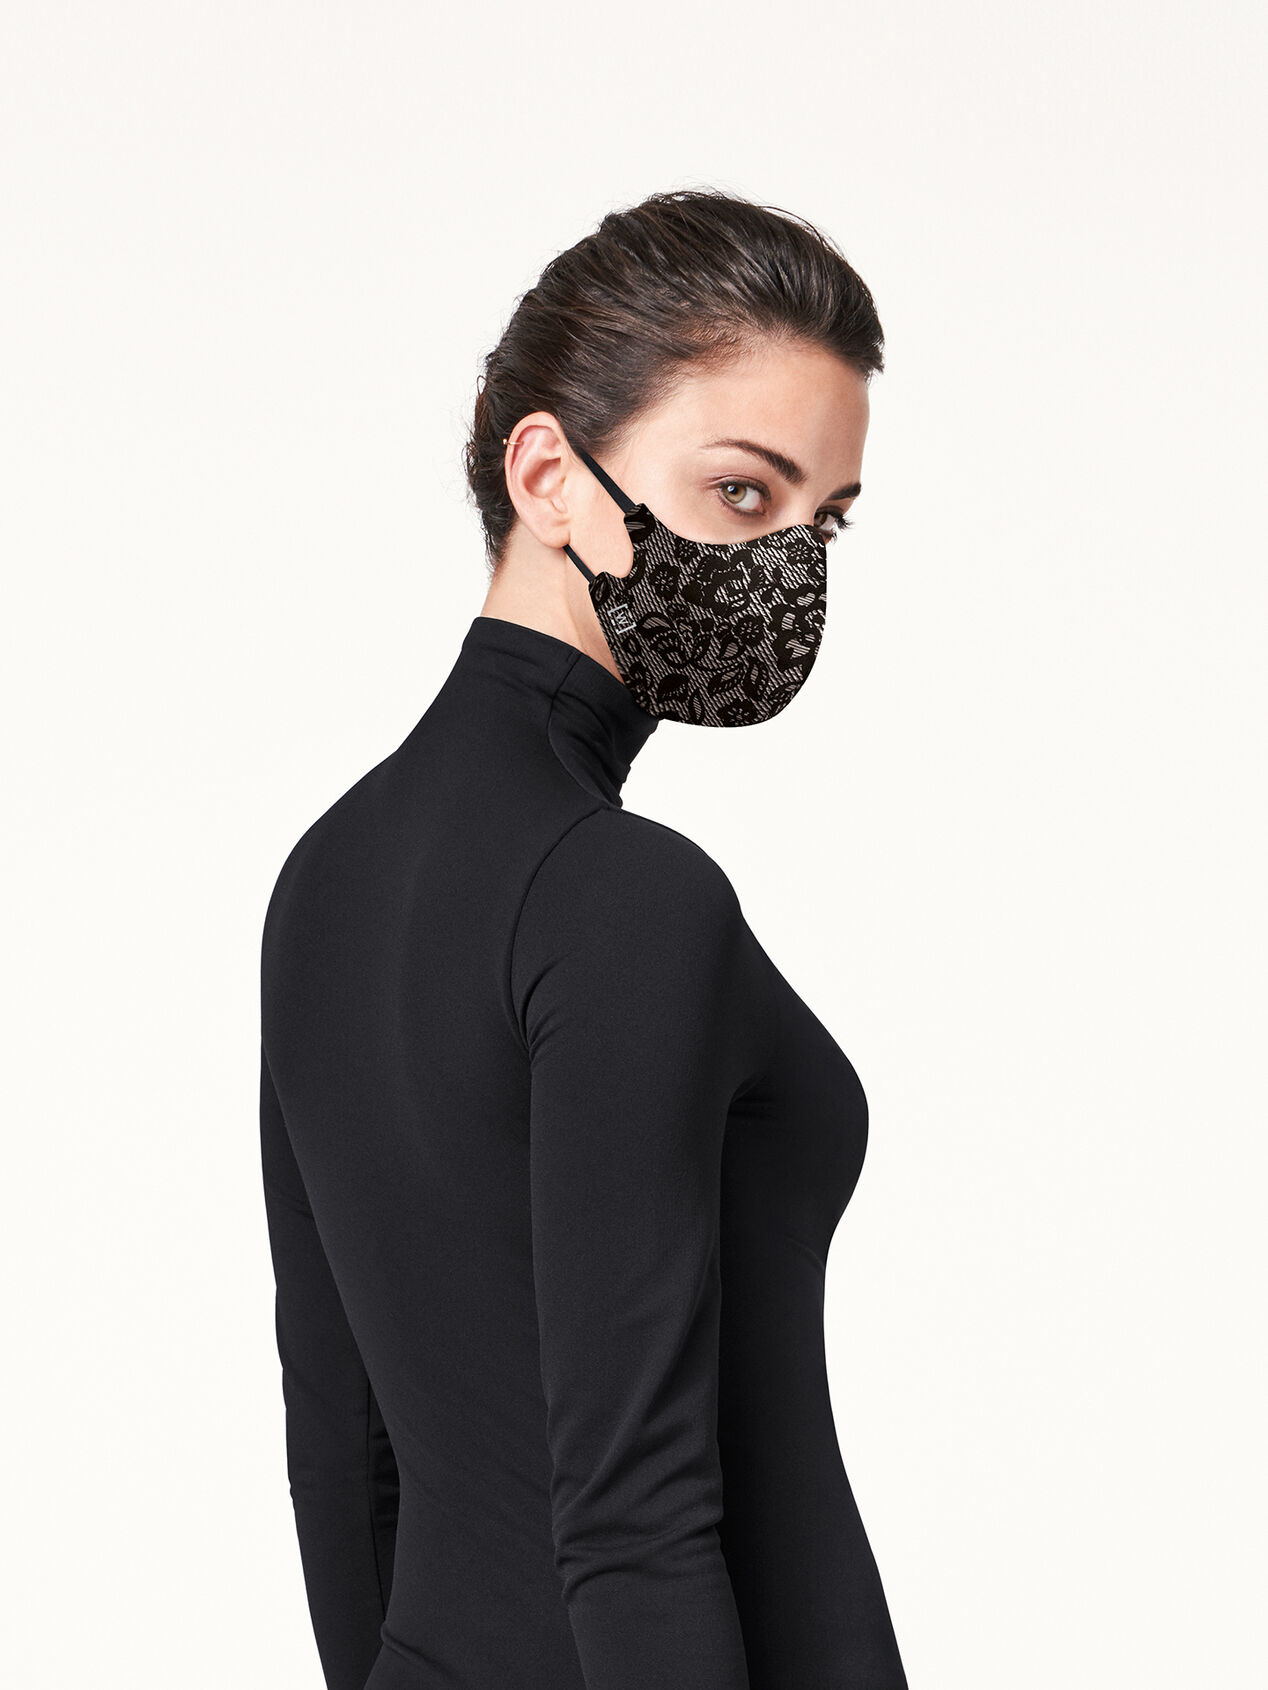 WOLFORD 96233 Wolford Lace Mask 7005-black OS